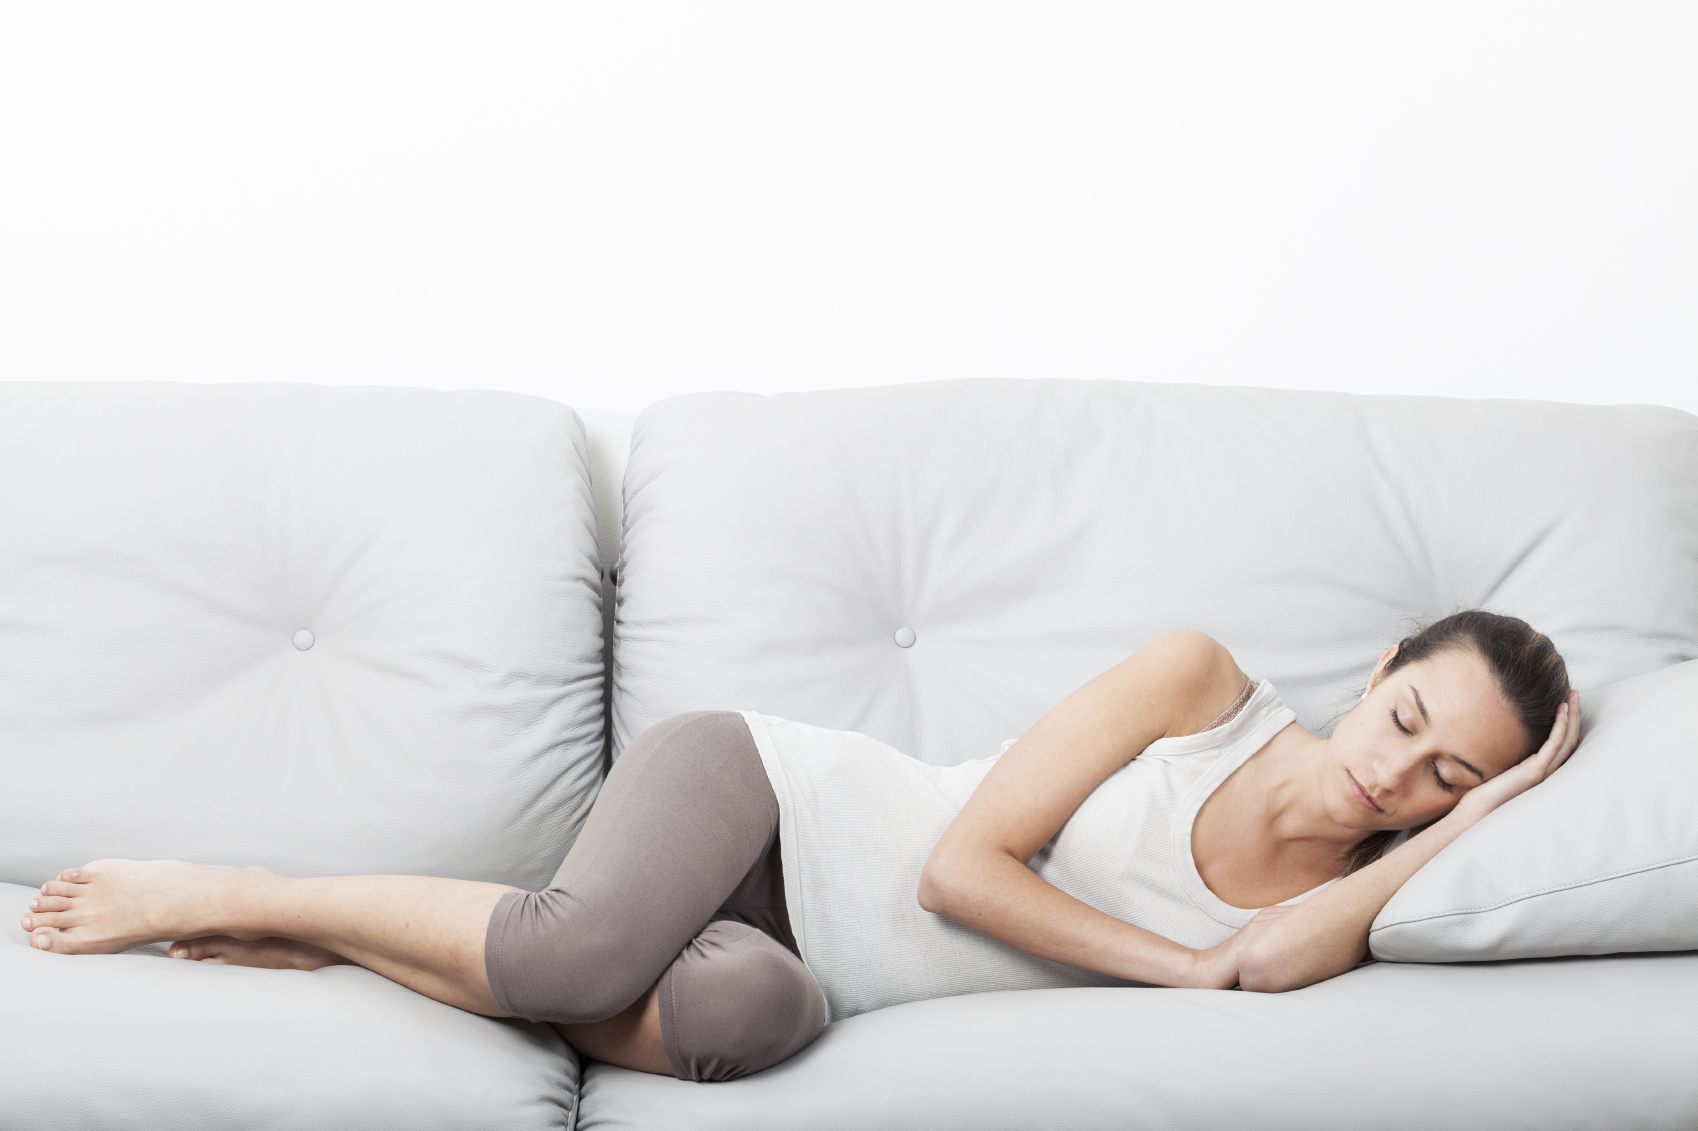 A woman taking a nap on the couch. (stock image)